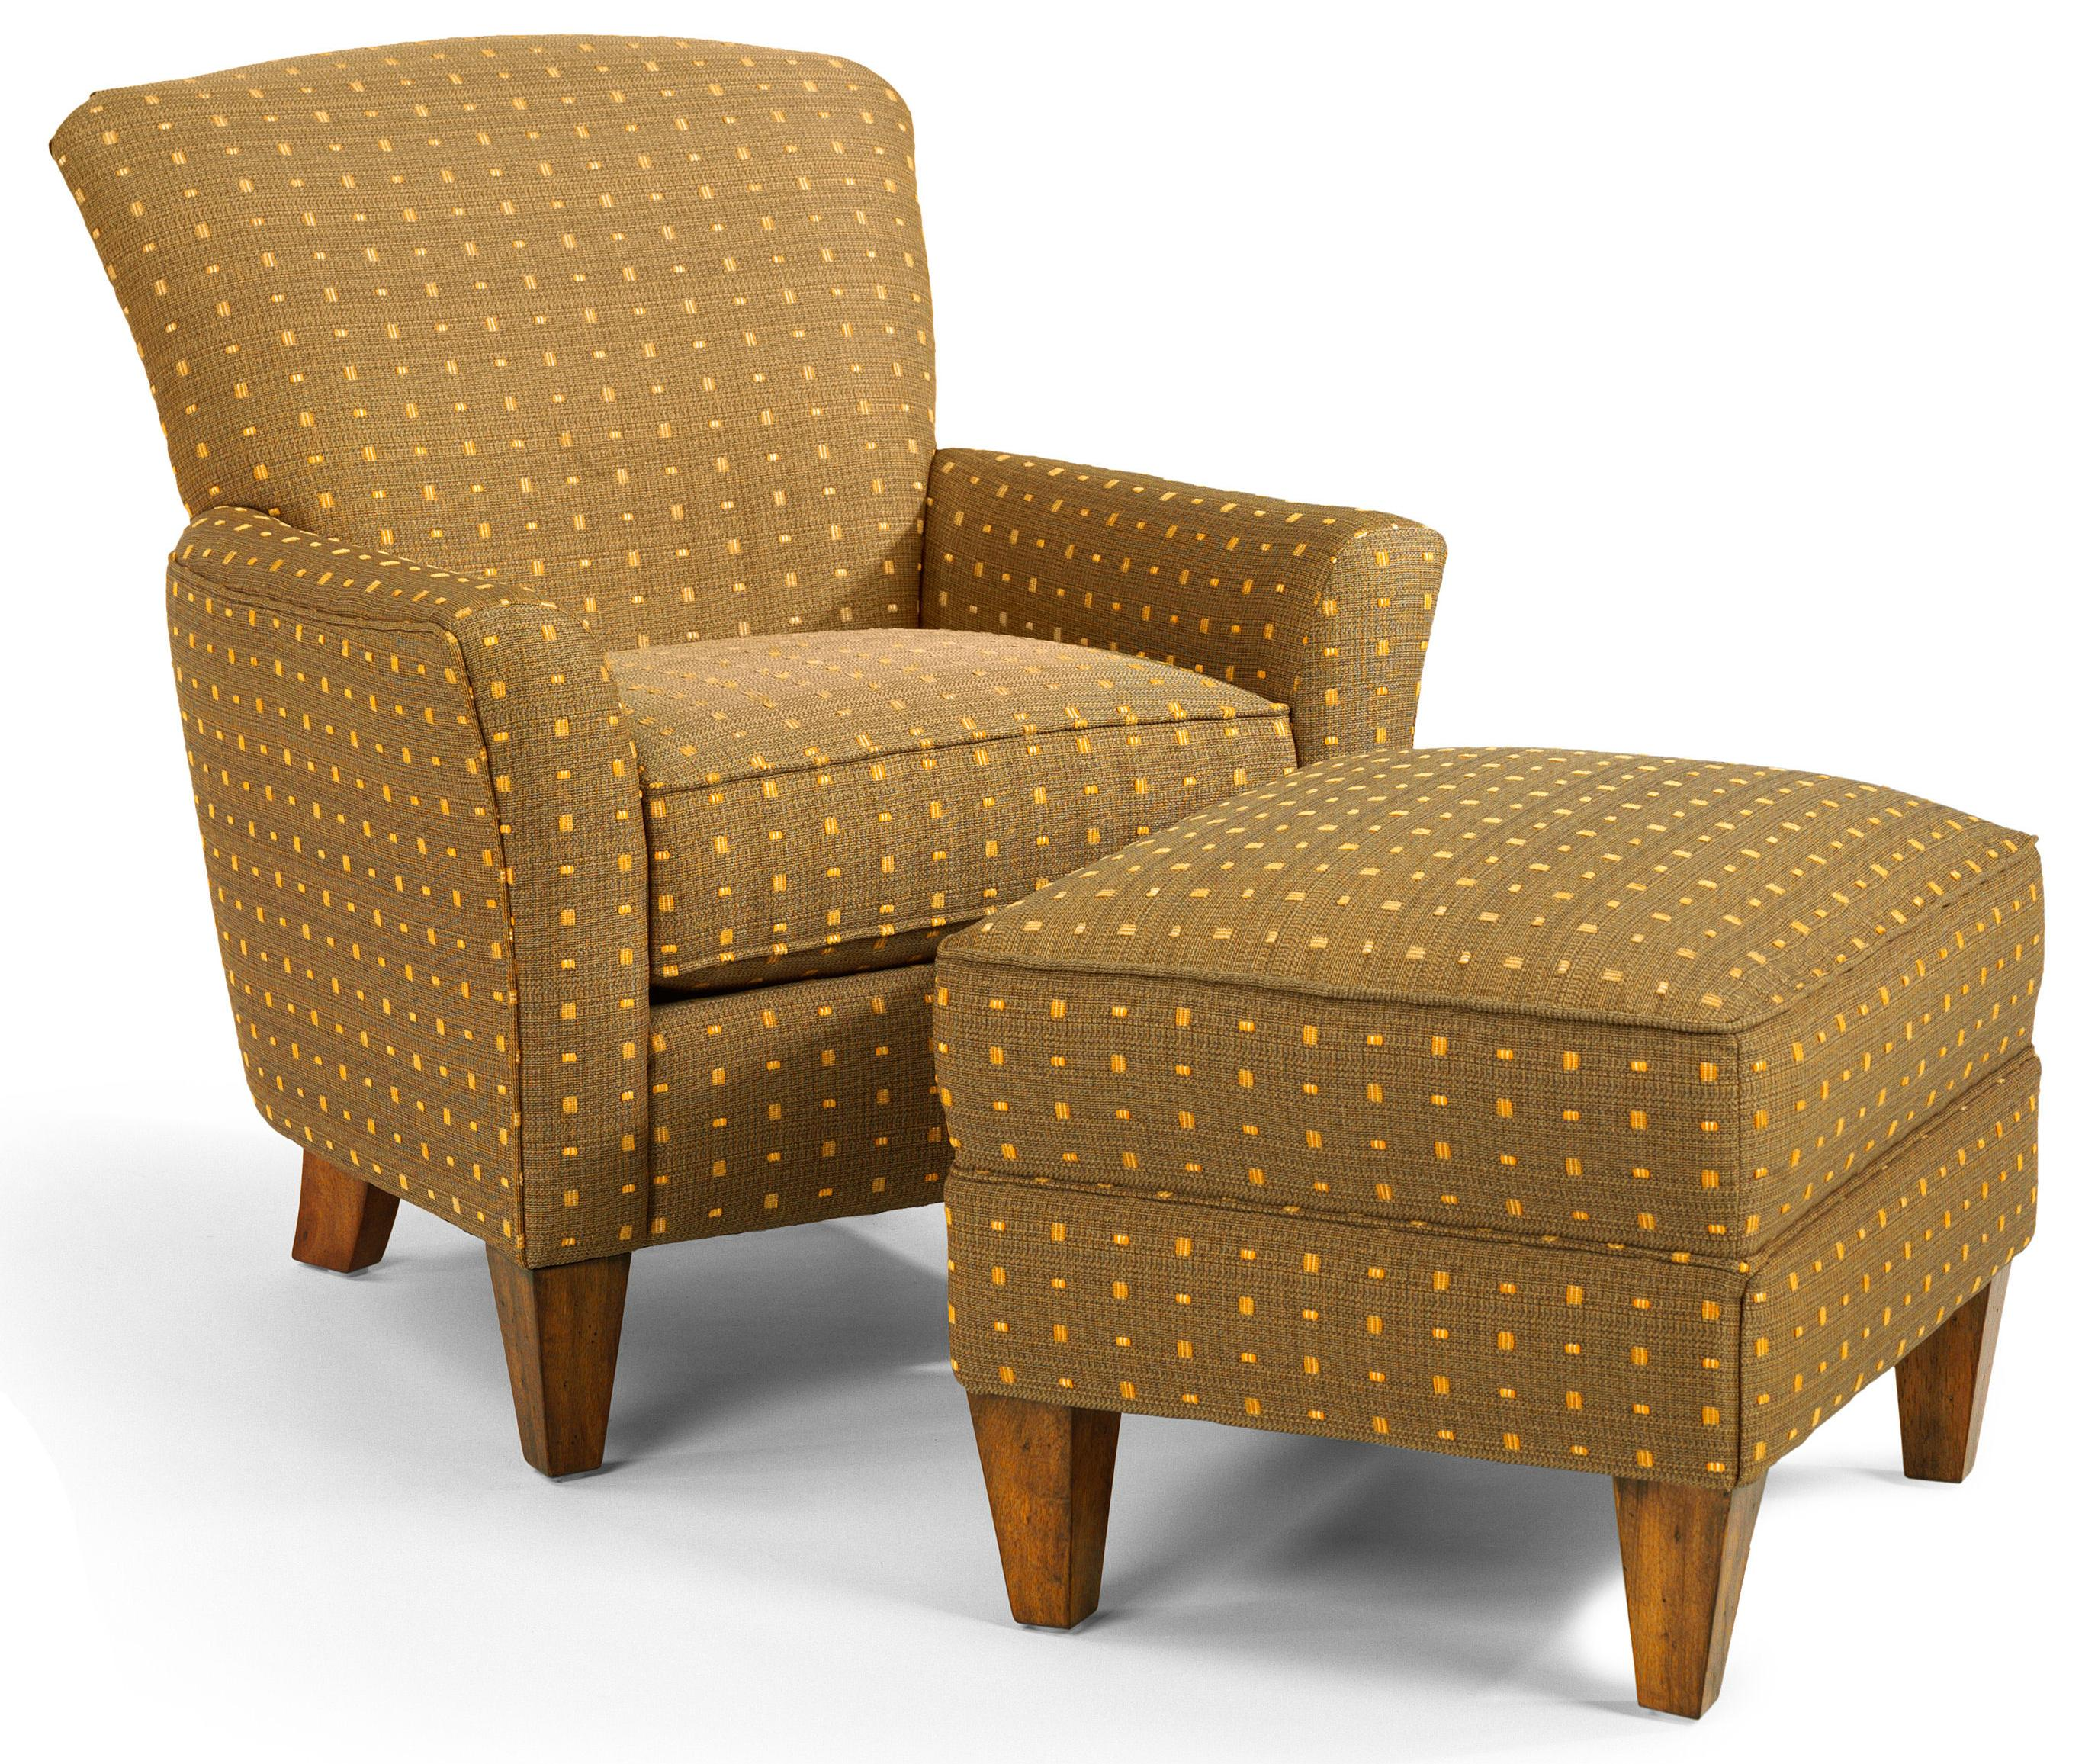 Chairs With Ottoman Accents Dancer Chair Ottoman Set By Flexsteel At Dunk Bright Furniture